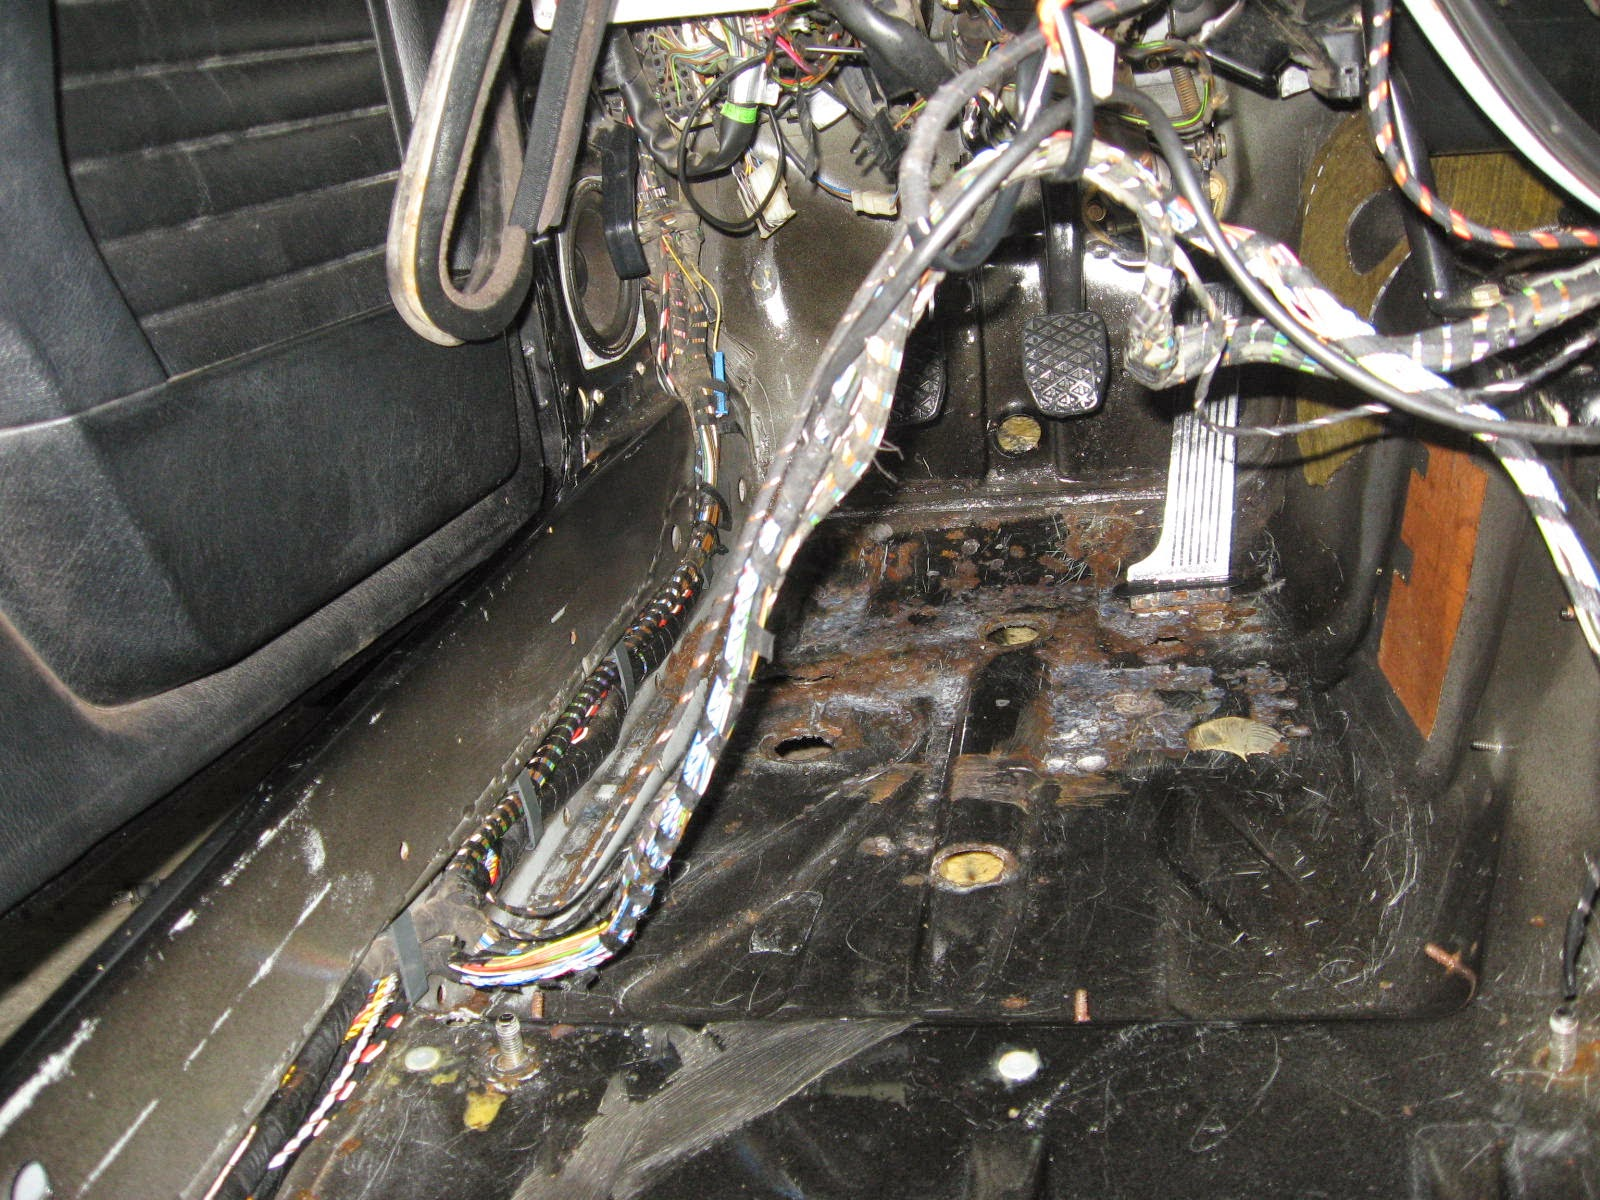 Dennys M62b44 Swap Ms2 Installed First Start Video Inside Page Microsquirt Wiring After Cleaning Vacuuming Removing All The Oem Tar And As Much Rust Possible These Floors Are In Great Solid Condition For A Car Of 23